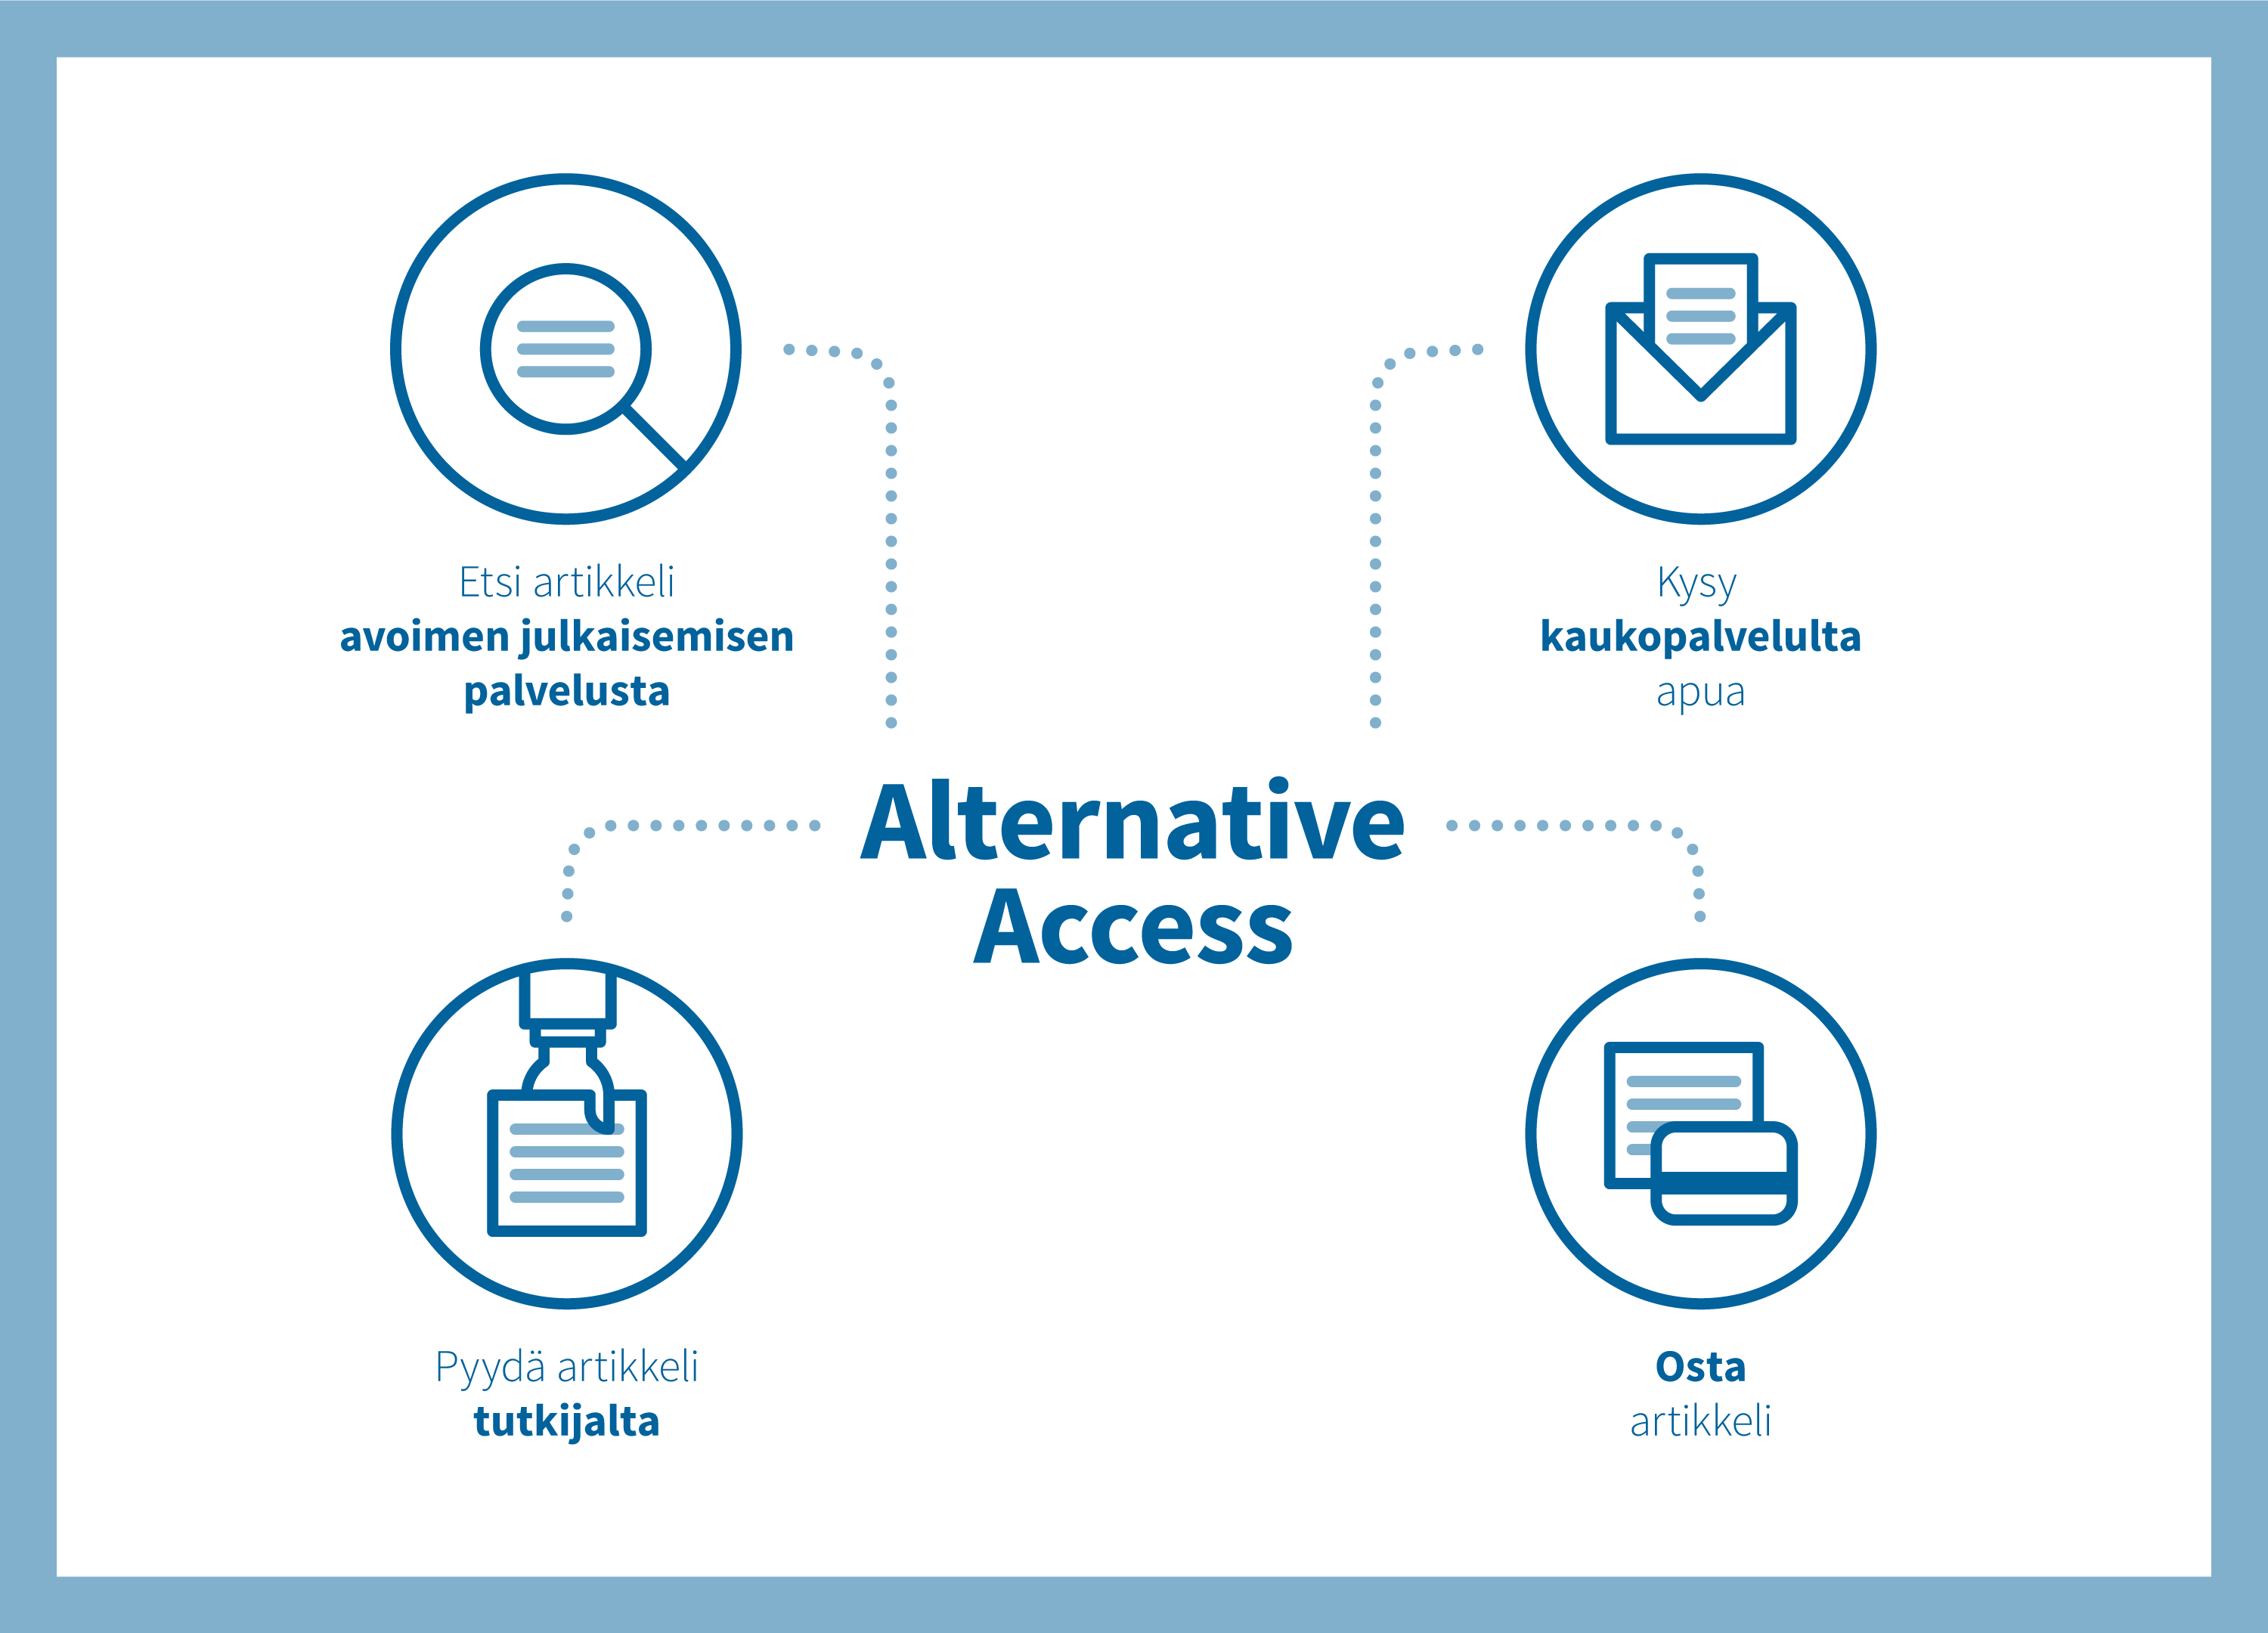 Alternative Access (Visuaalinen toteutus: Kilda Creative / Kaskas Media)